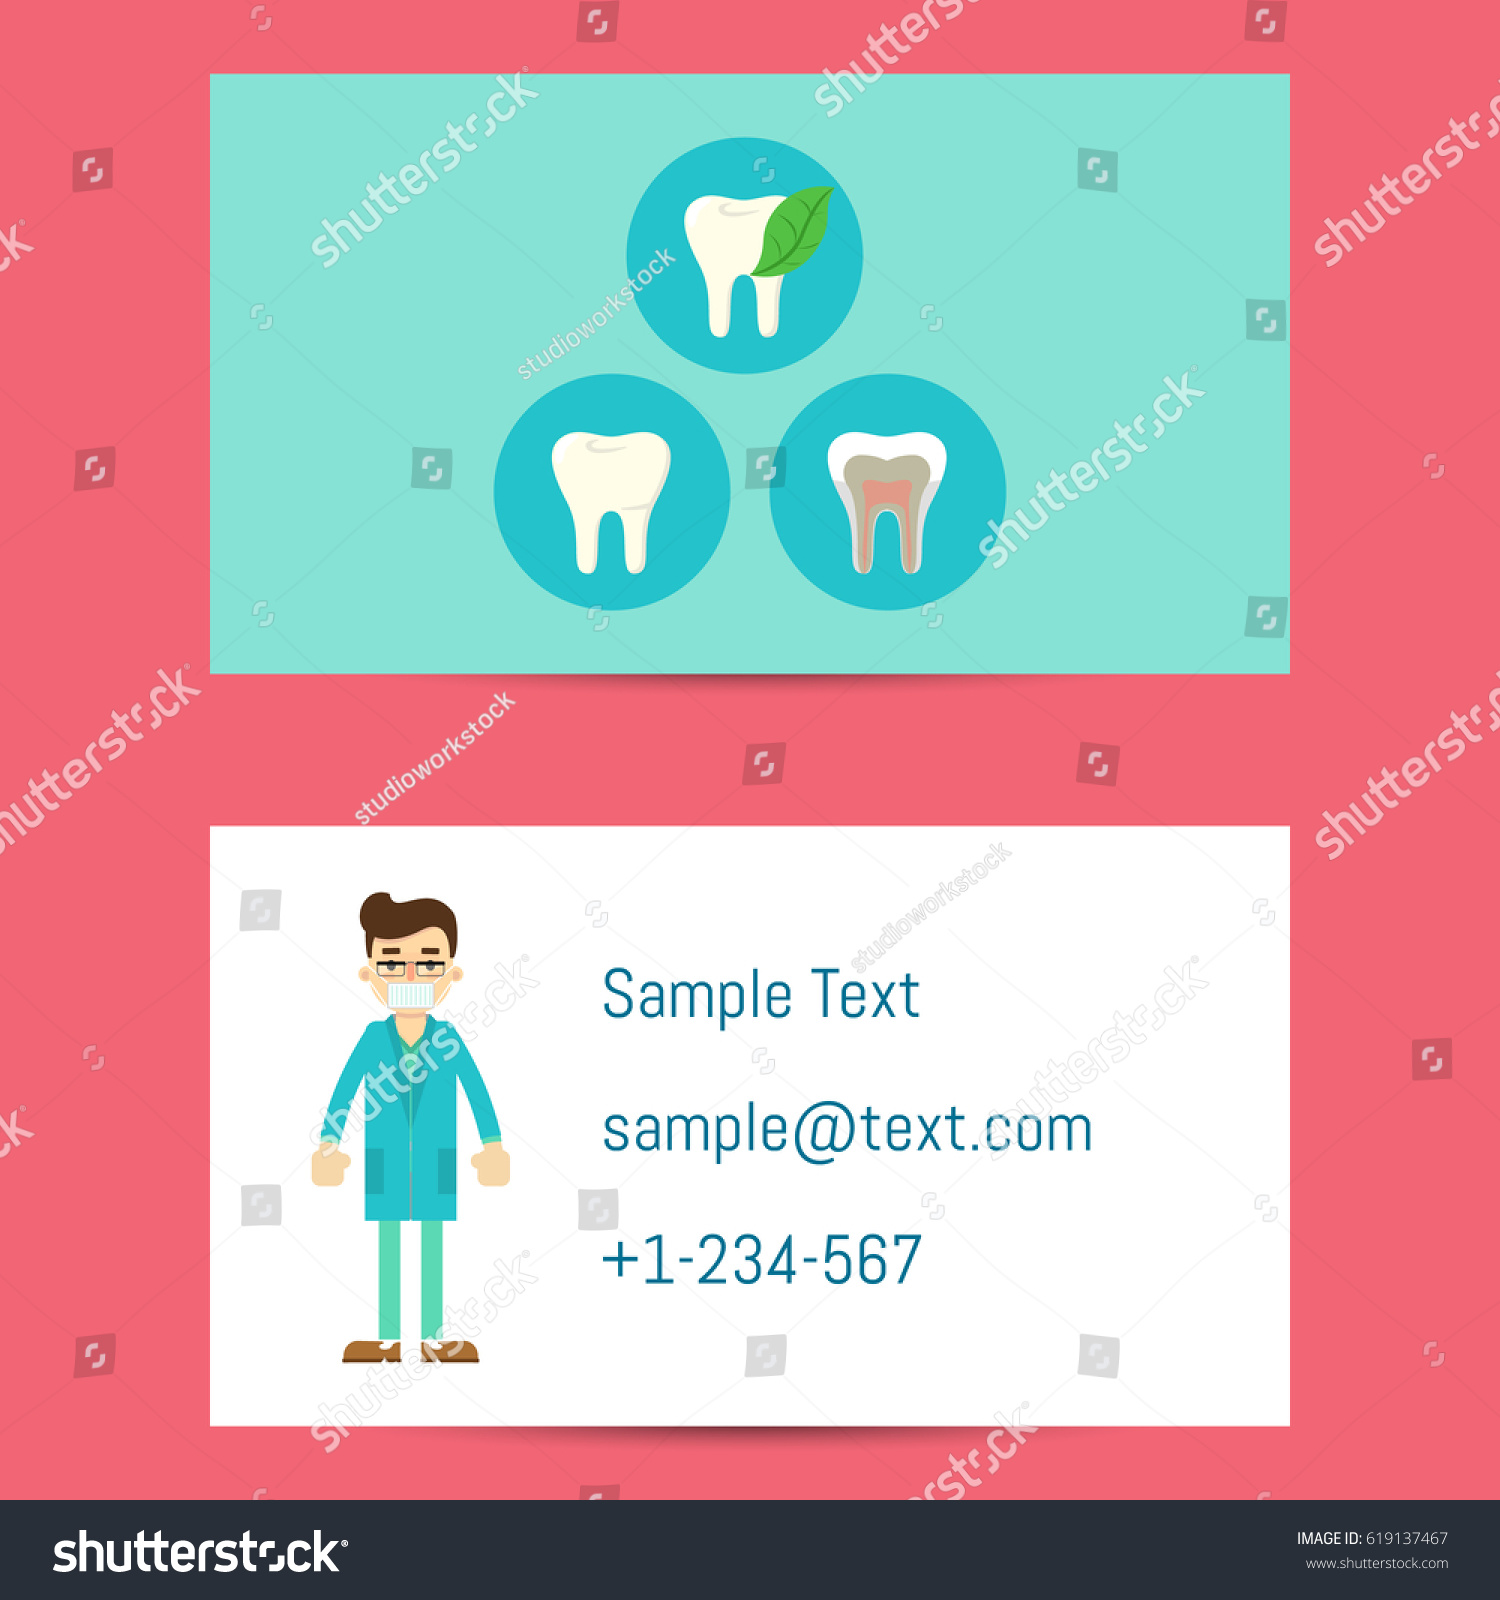 Professional Business Card Template Dentists Cartoon Stock Vector ...